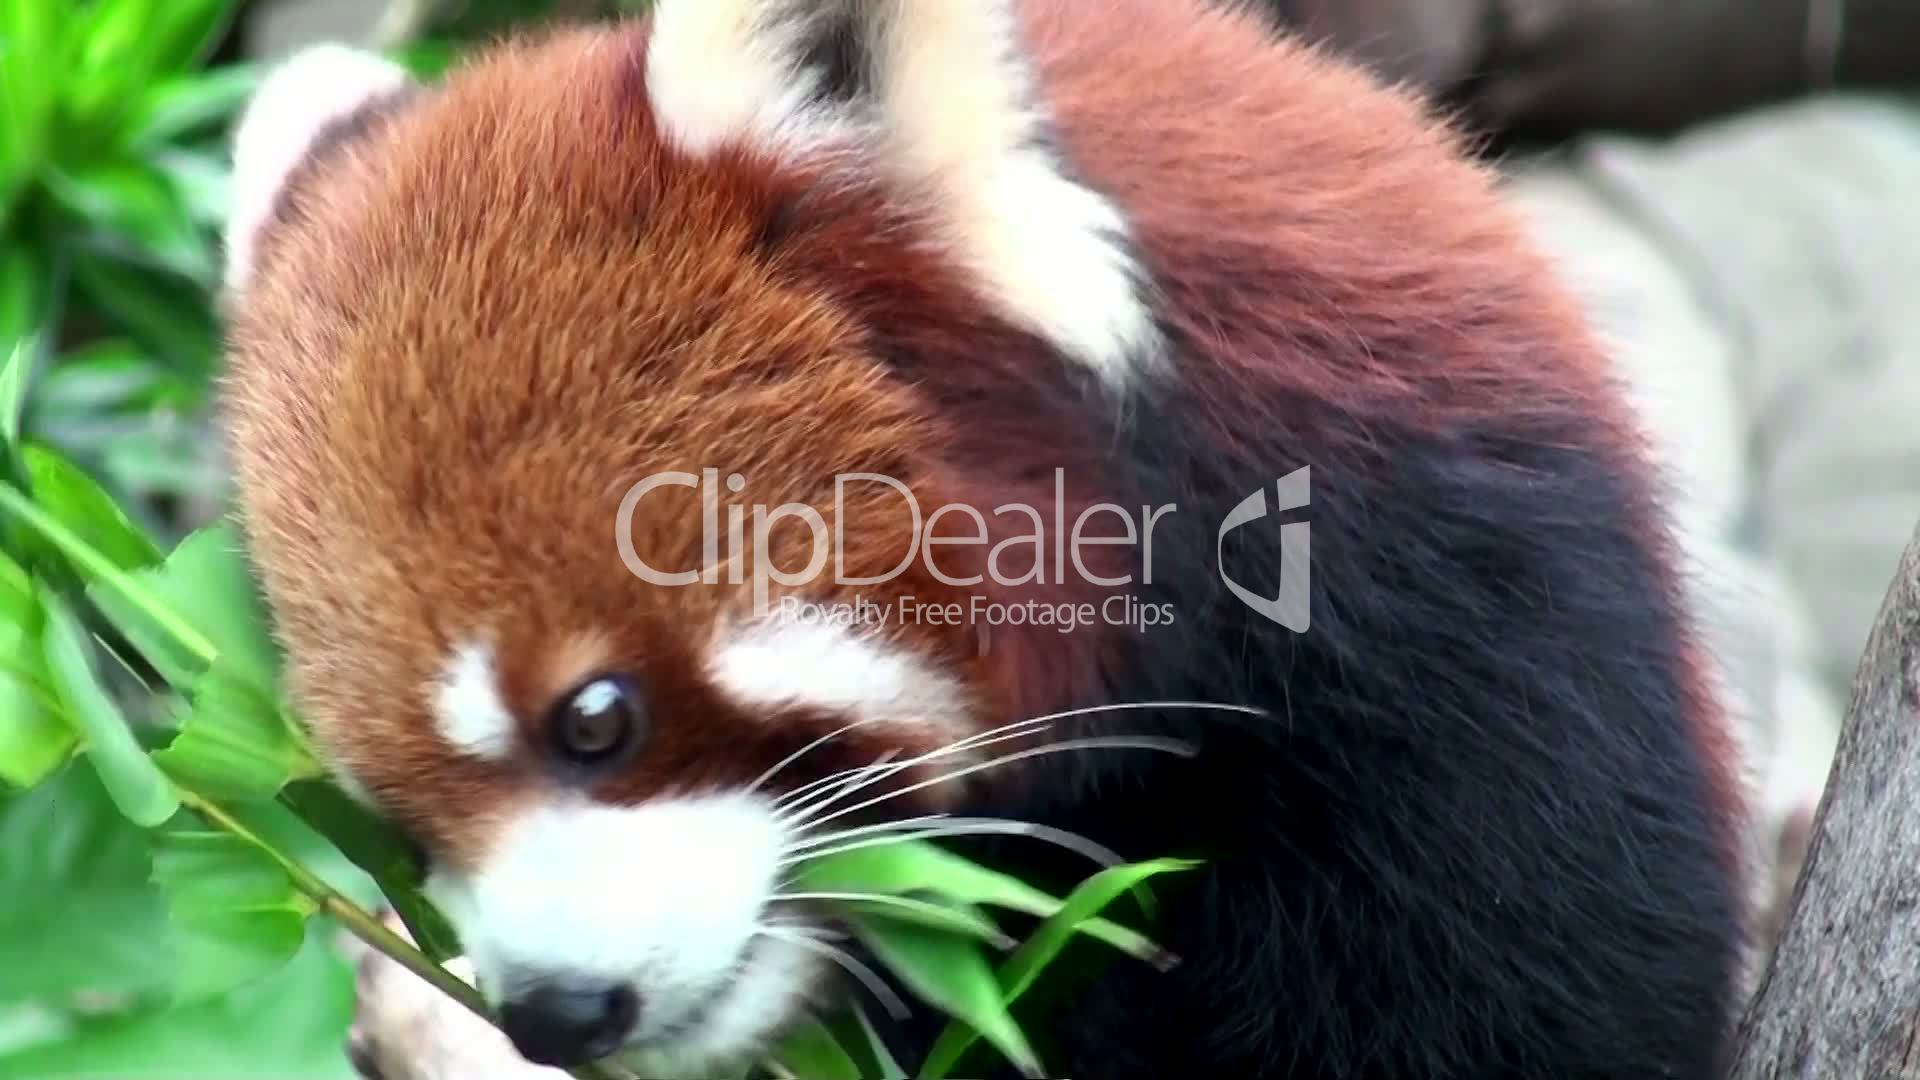 Red panda eating bamboo: Royalty-free video and stock footage